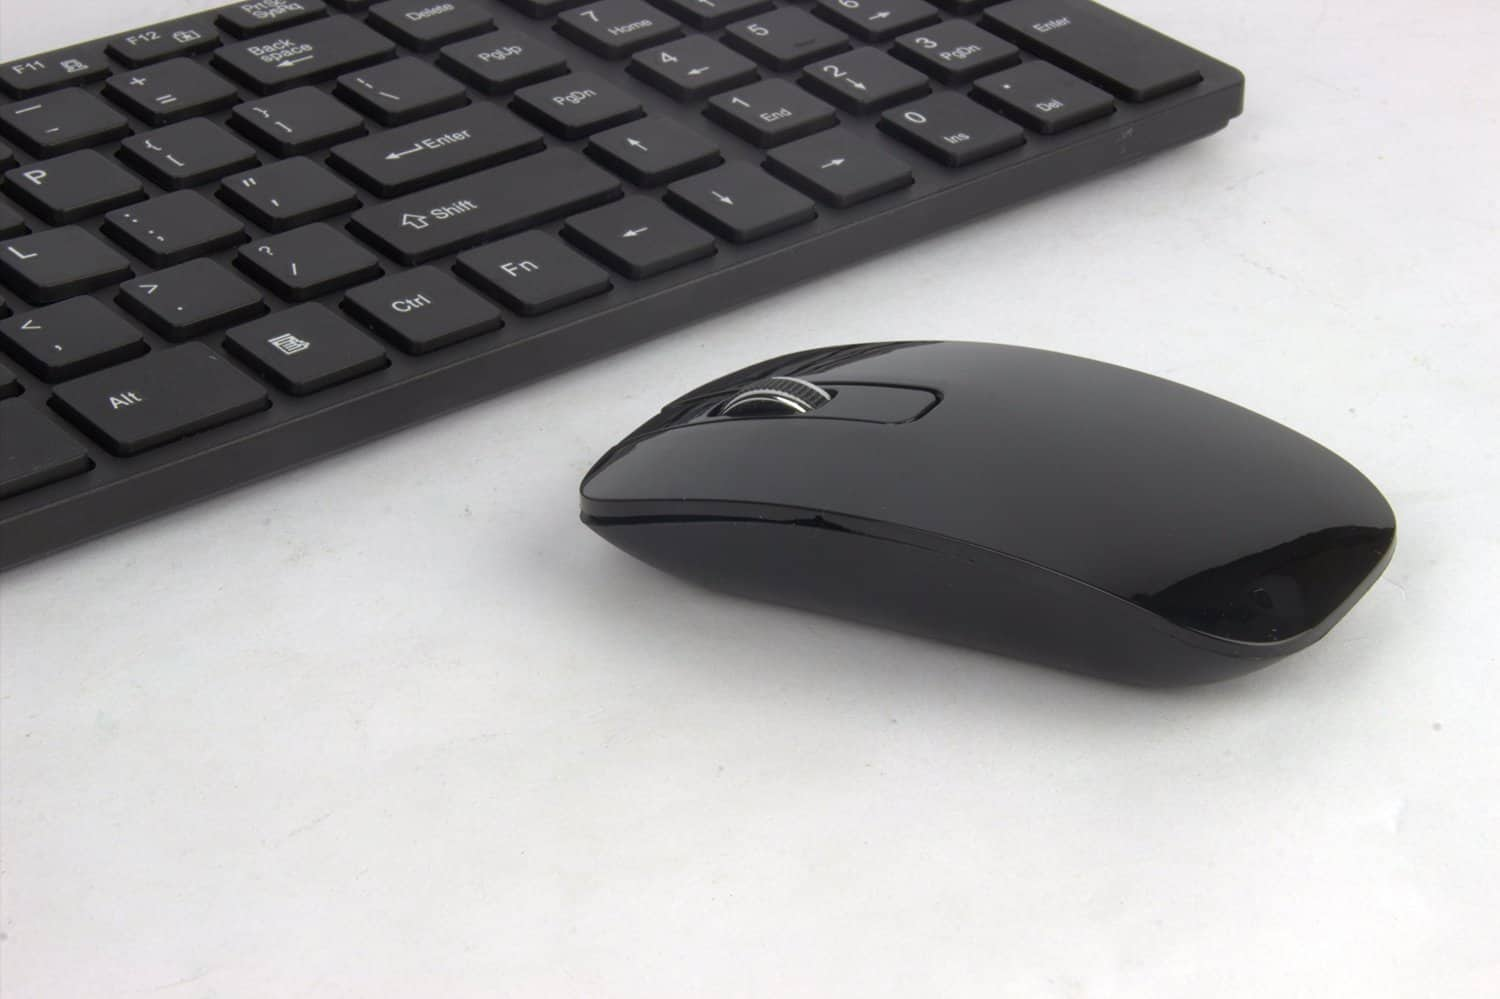 Bluefinger Keyboard and Mouse